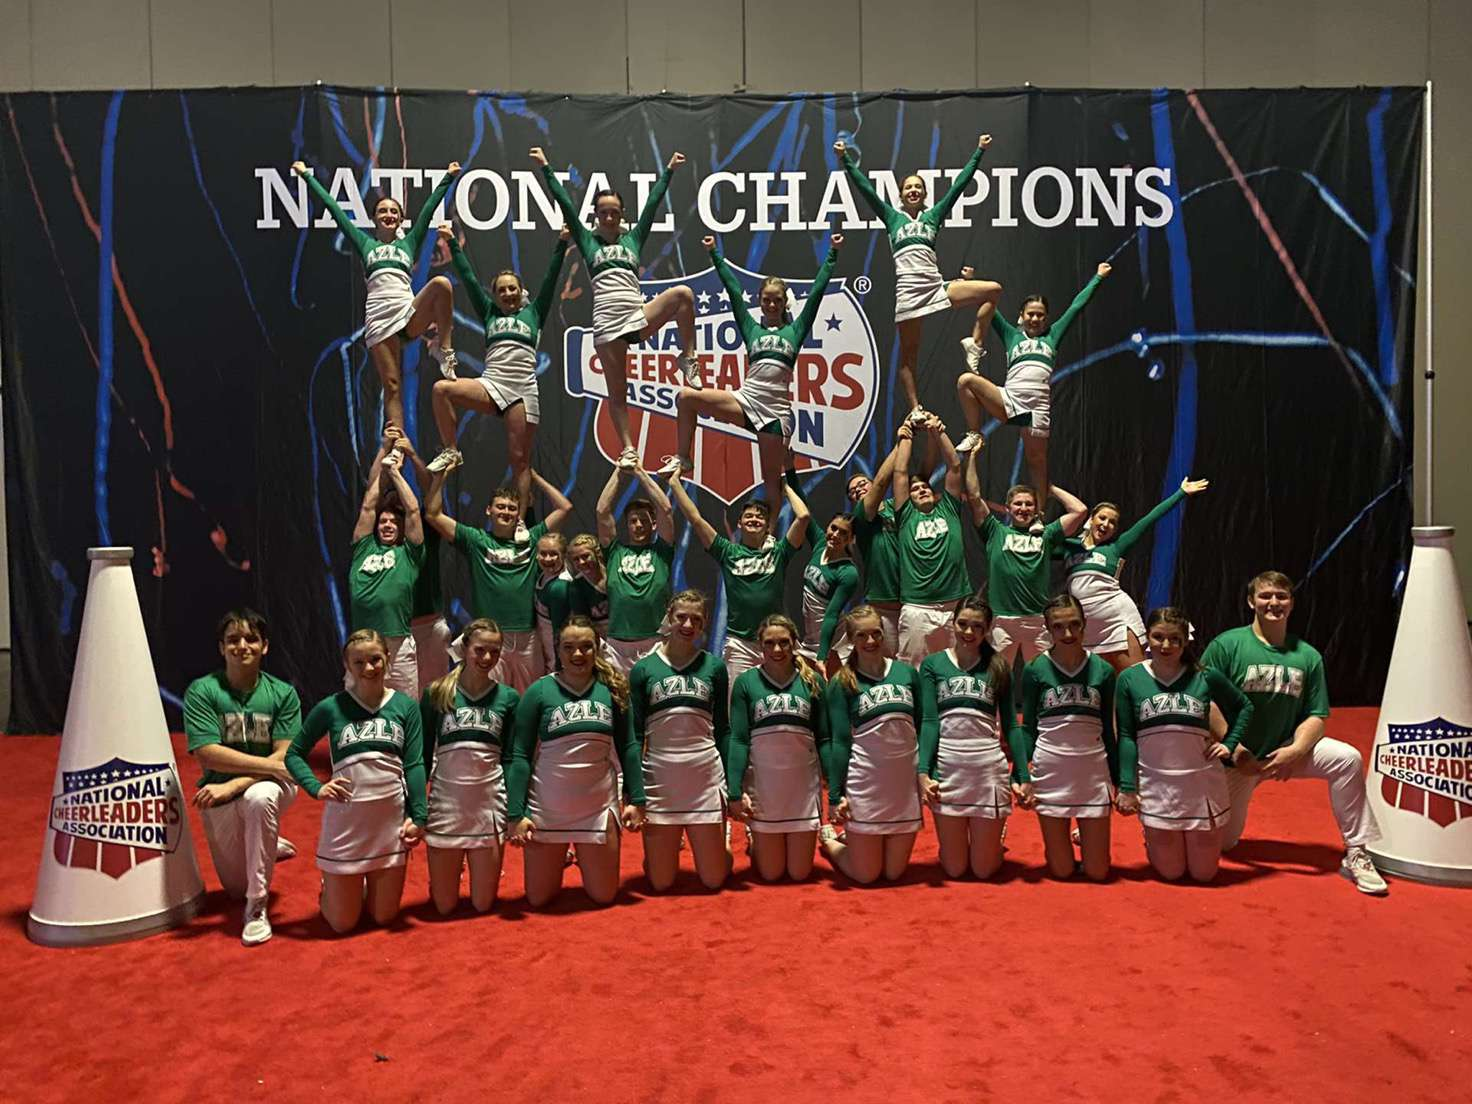 Here is the Cheer team after the competition.